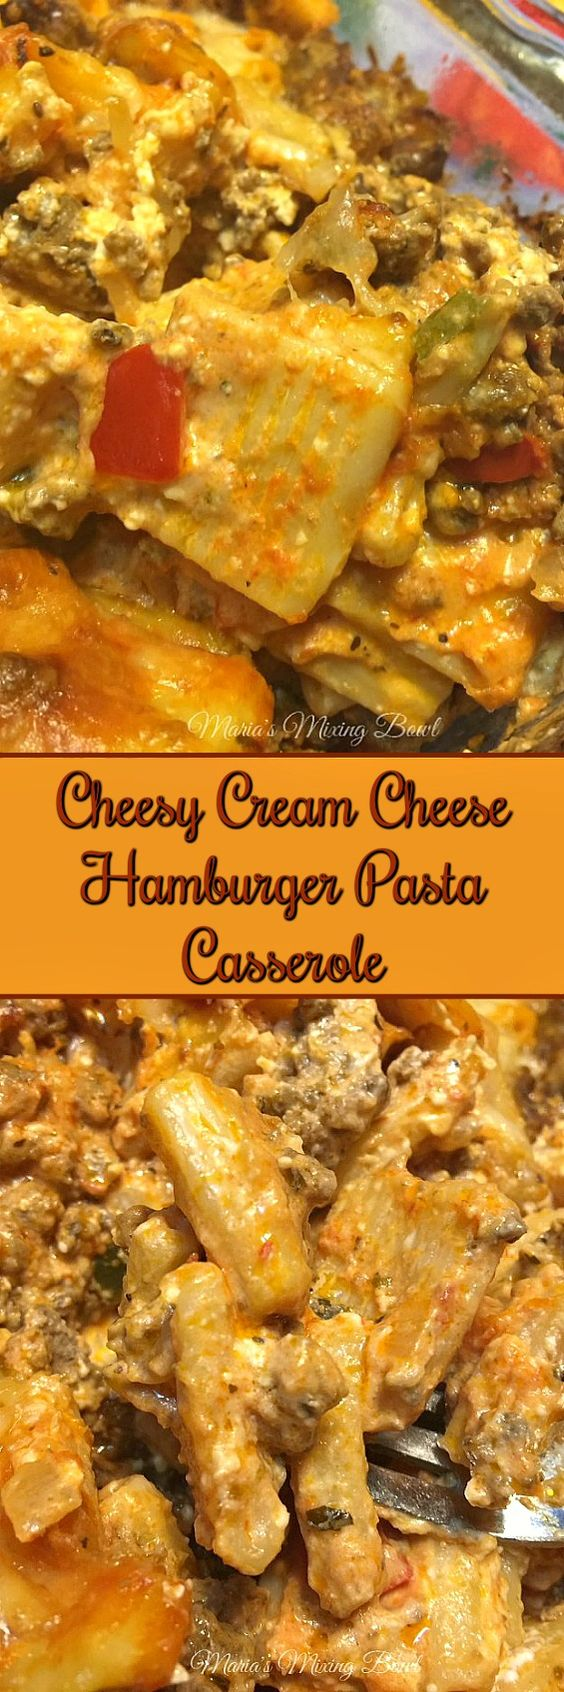 Cheesy Cream Cheese Hamburger Pasta Casserole - is a delicious comfort food casserole. My family has been making this ooey gooey cheesy casserole for years.